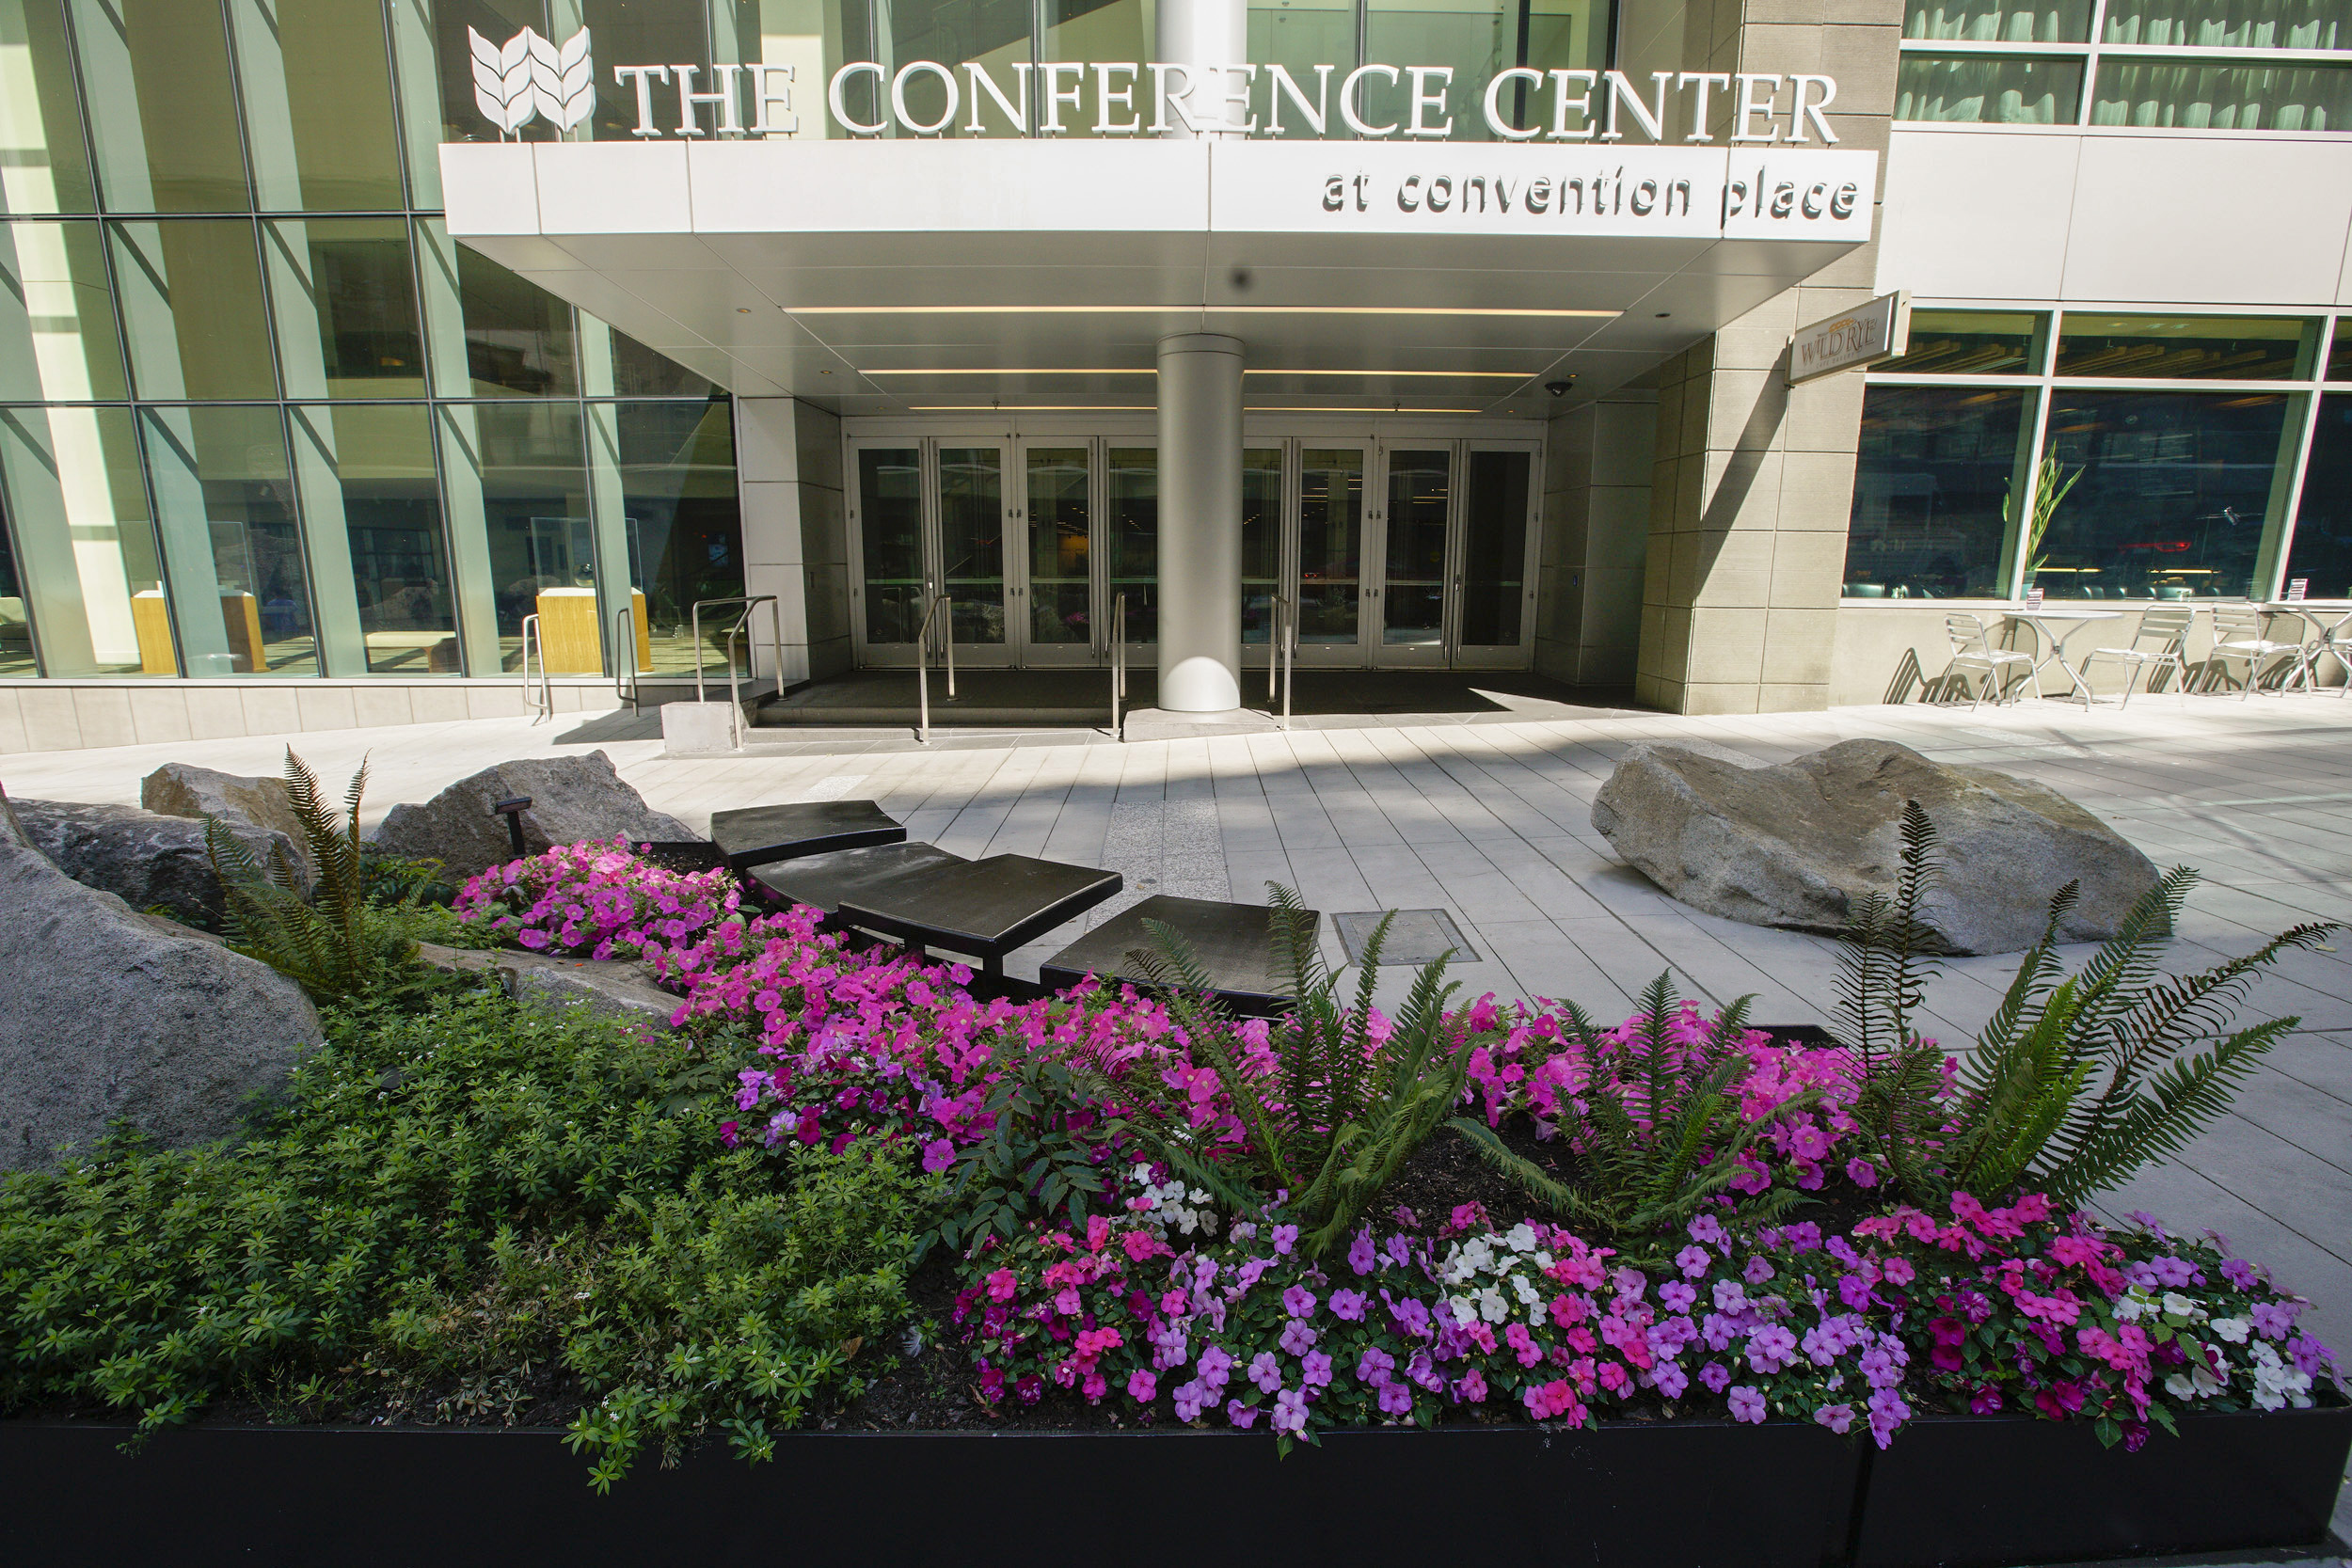 The Conference Center at WSCC